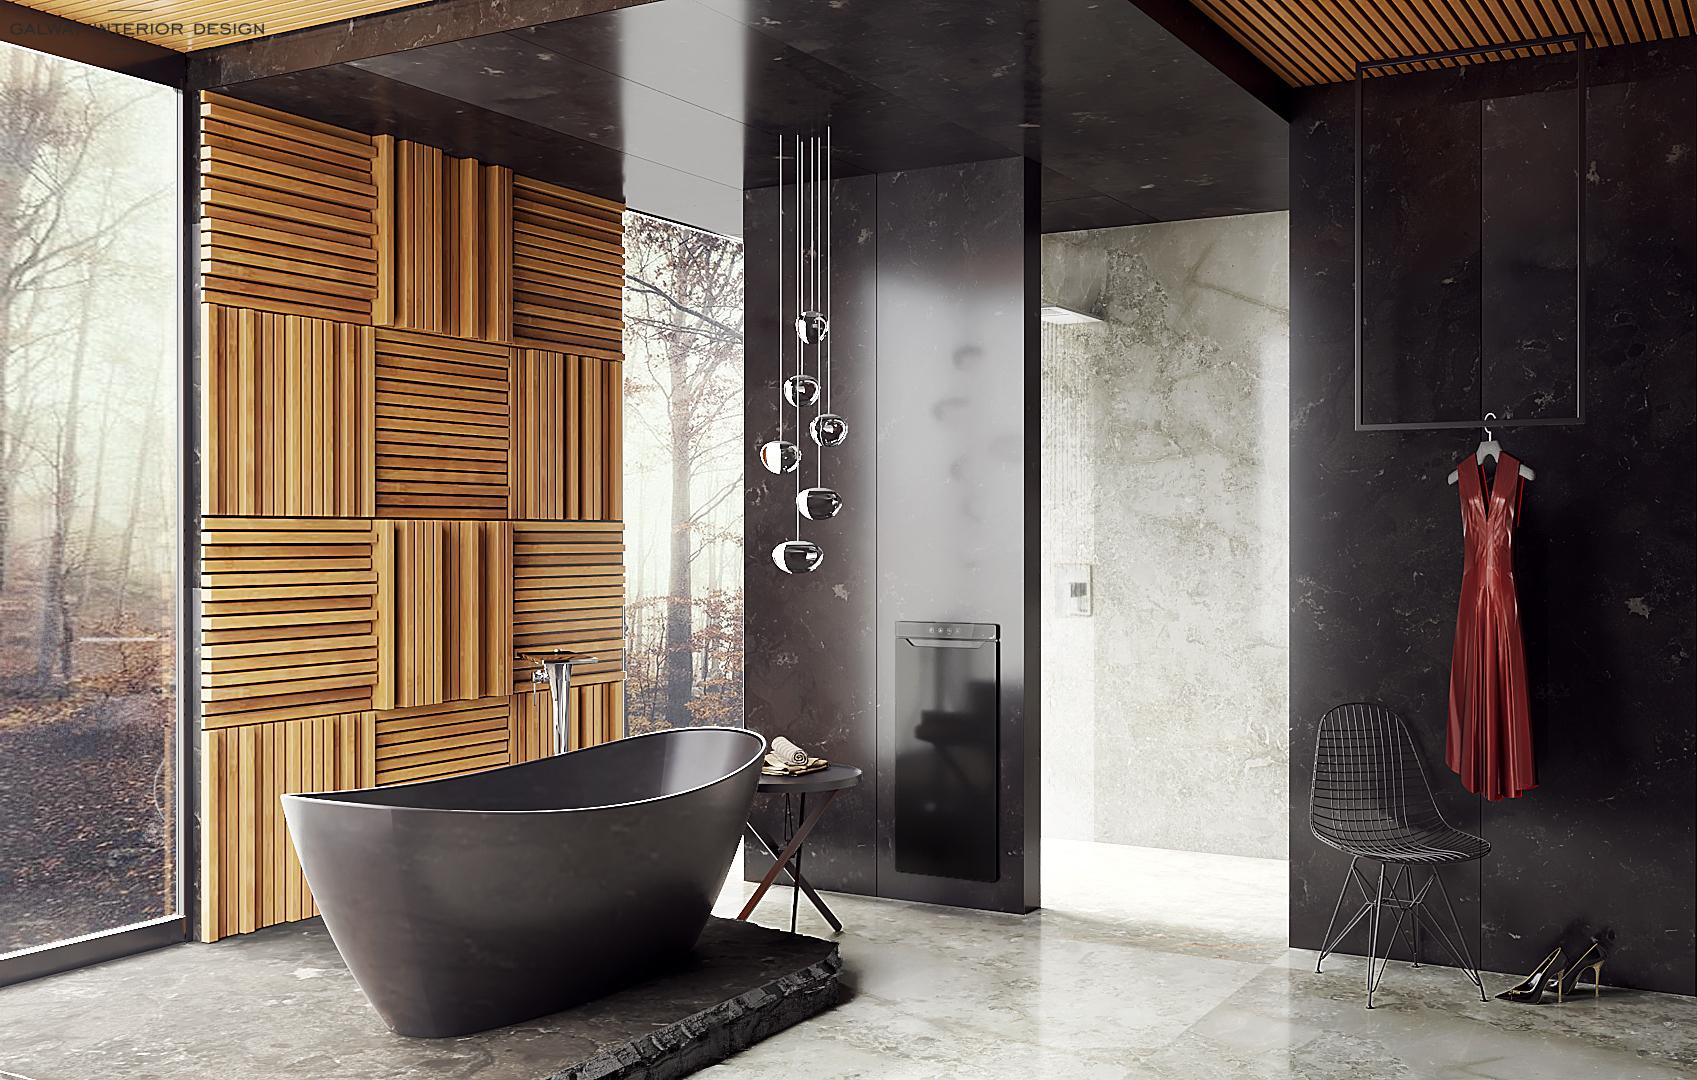 Galway Interior Design - Bathroom Stylish